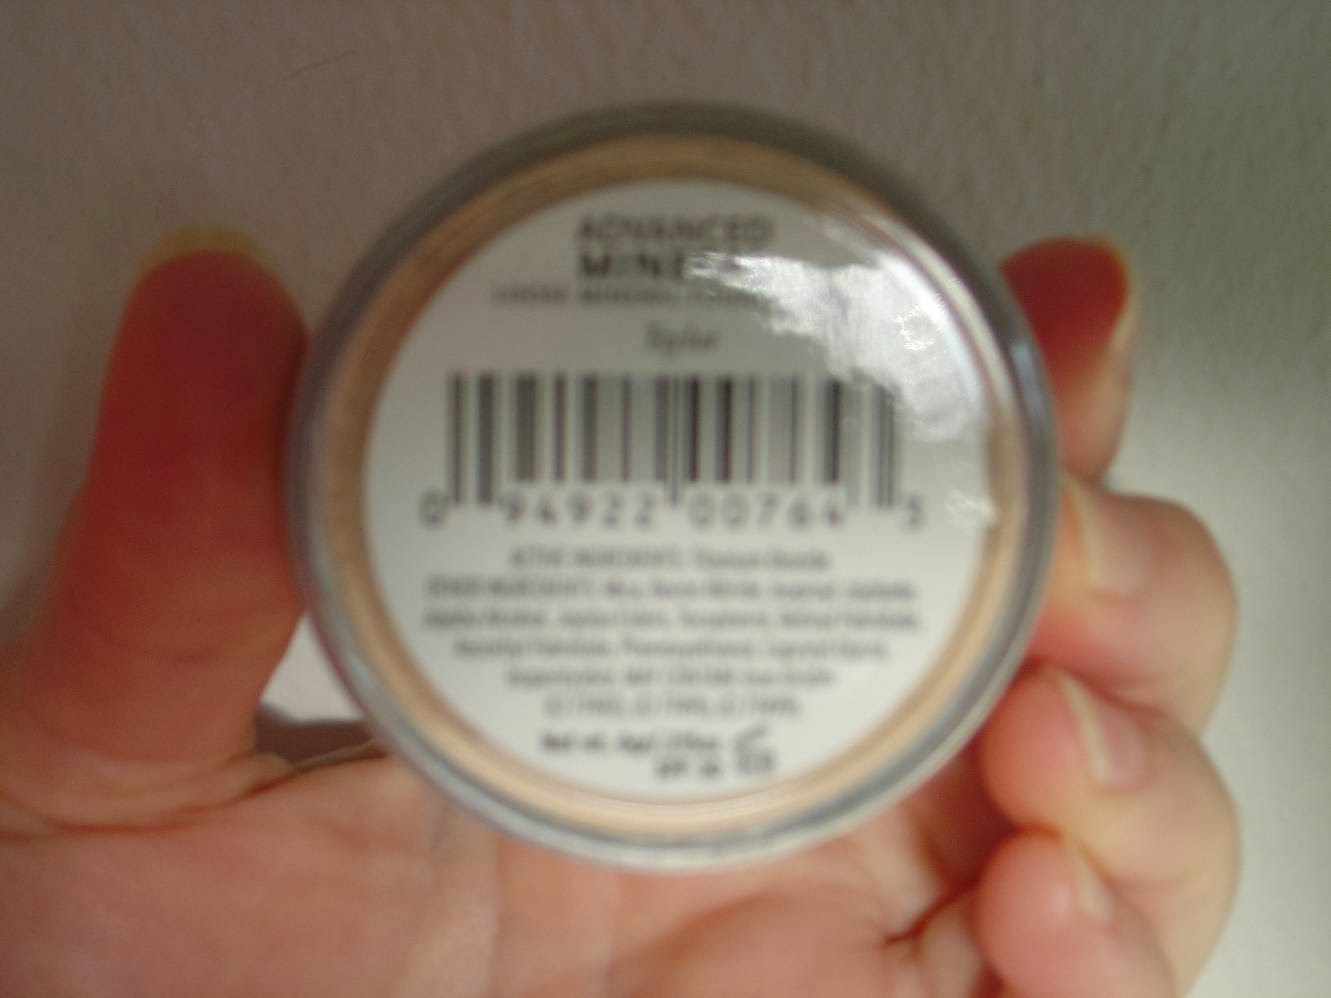 Advanced Mineral Makeup Loose Powder Foundation bottom label. jpeg